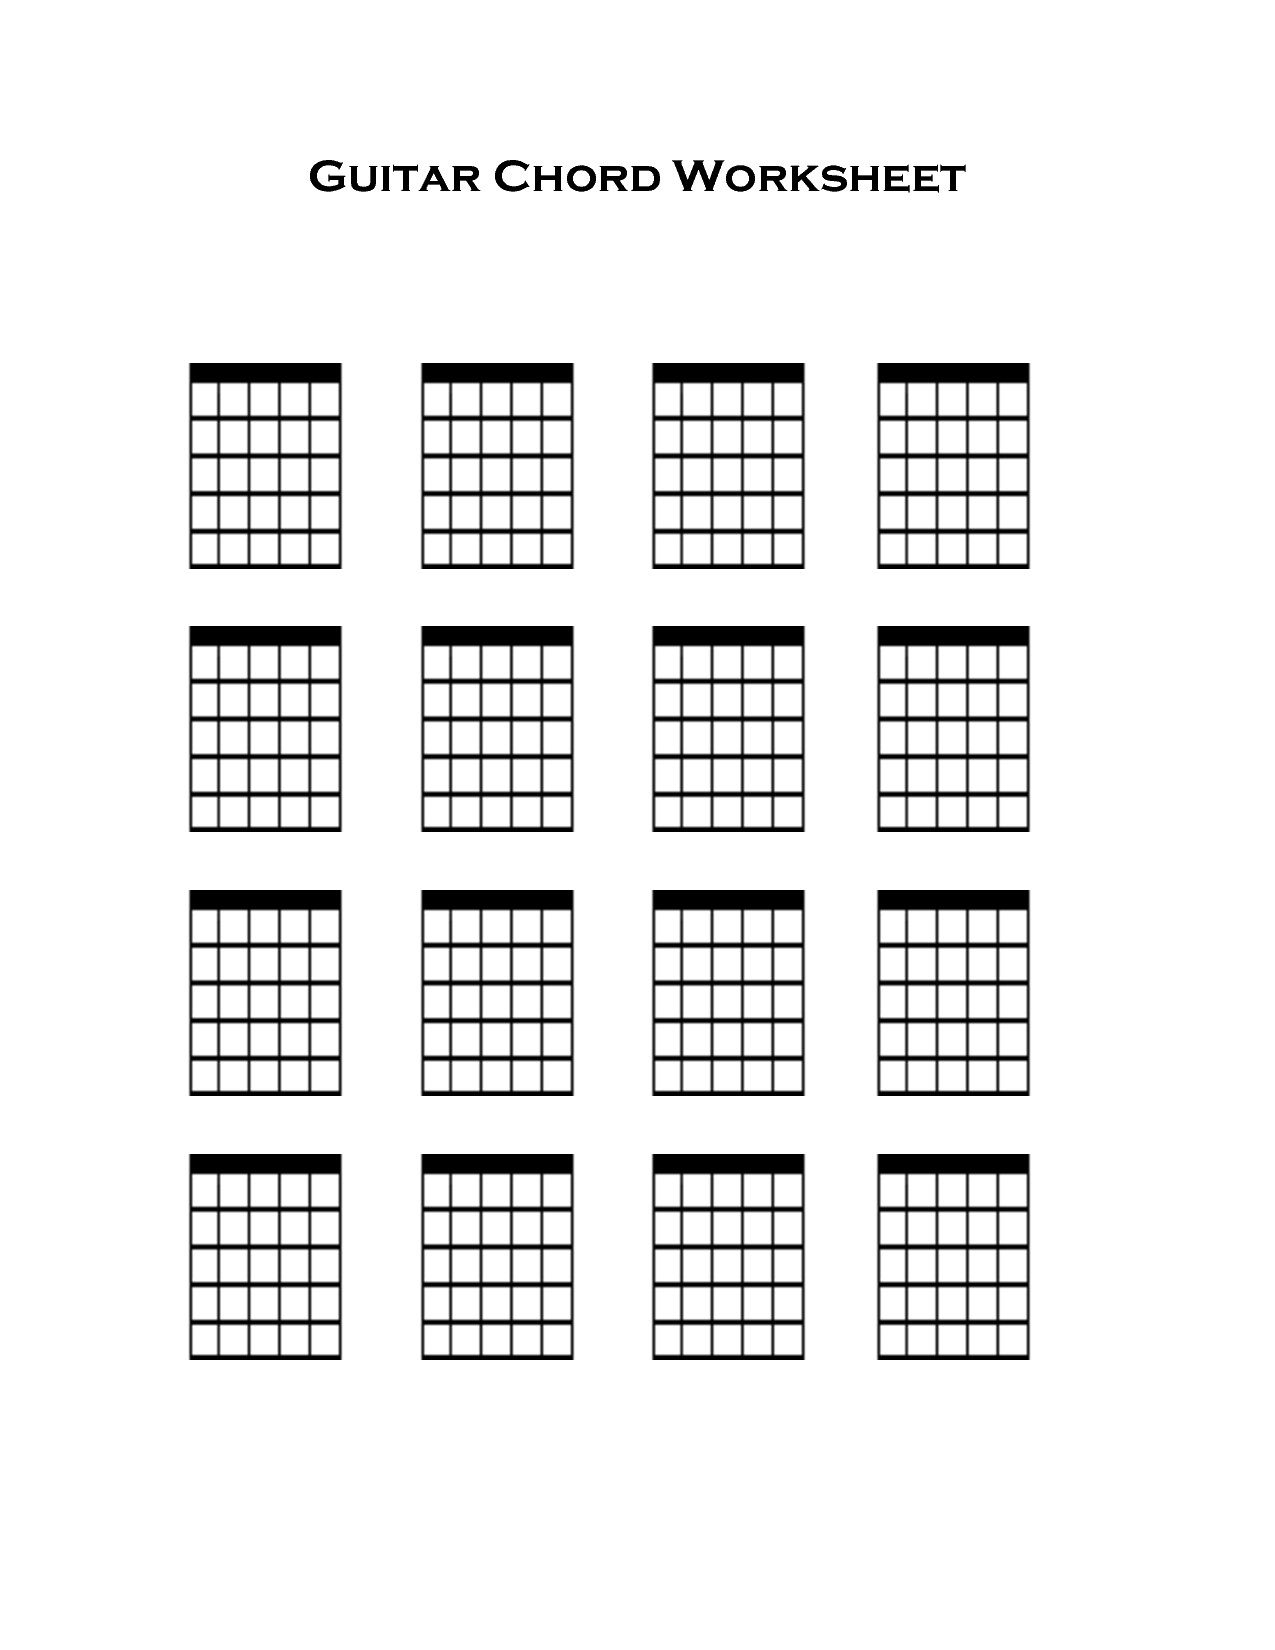 Blank Guitar Chord Sheet Guitar Chords Playing Guitar and Guitar On Pinterest